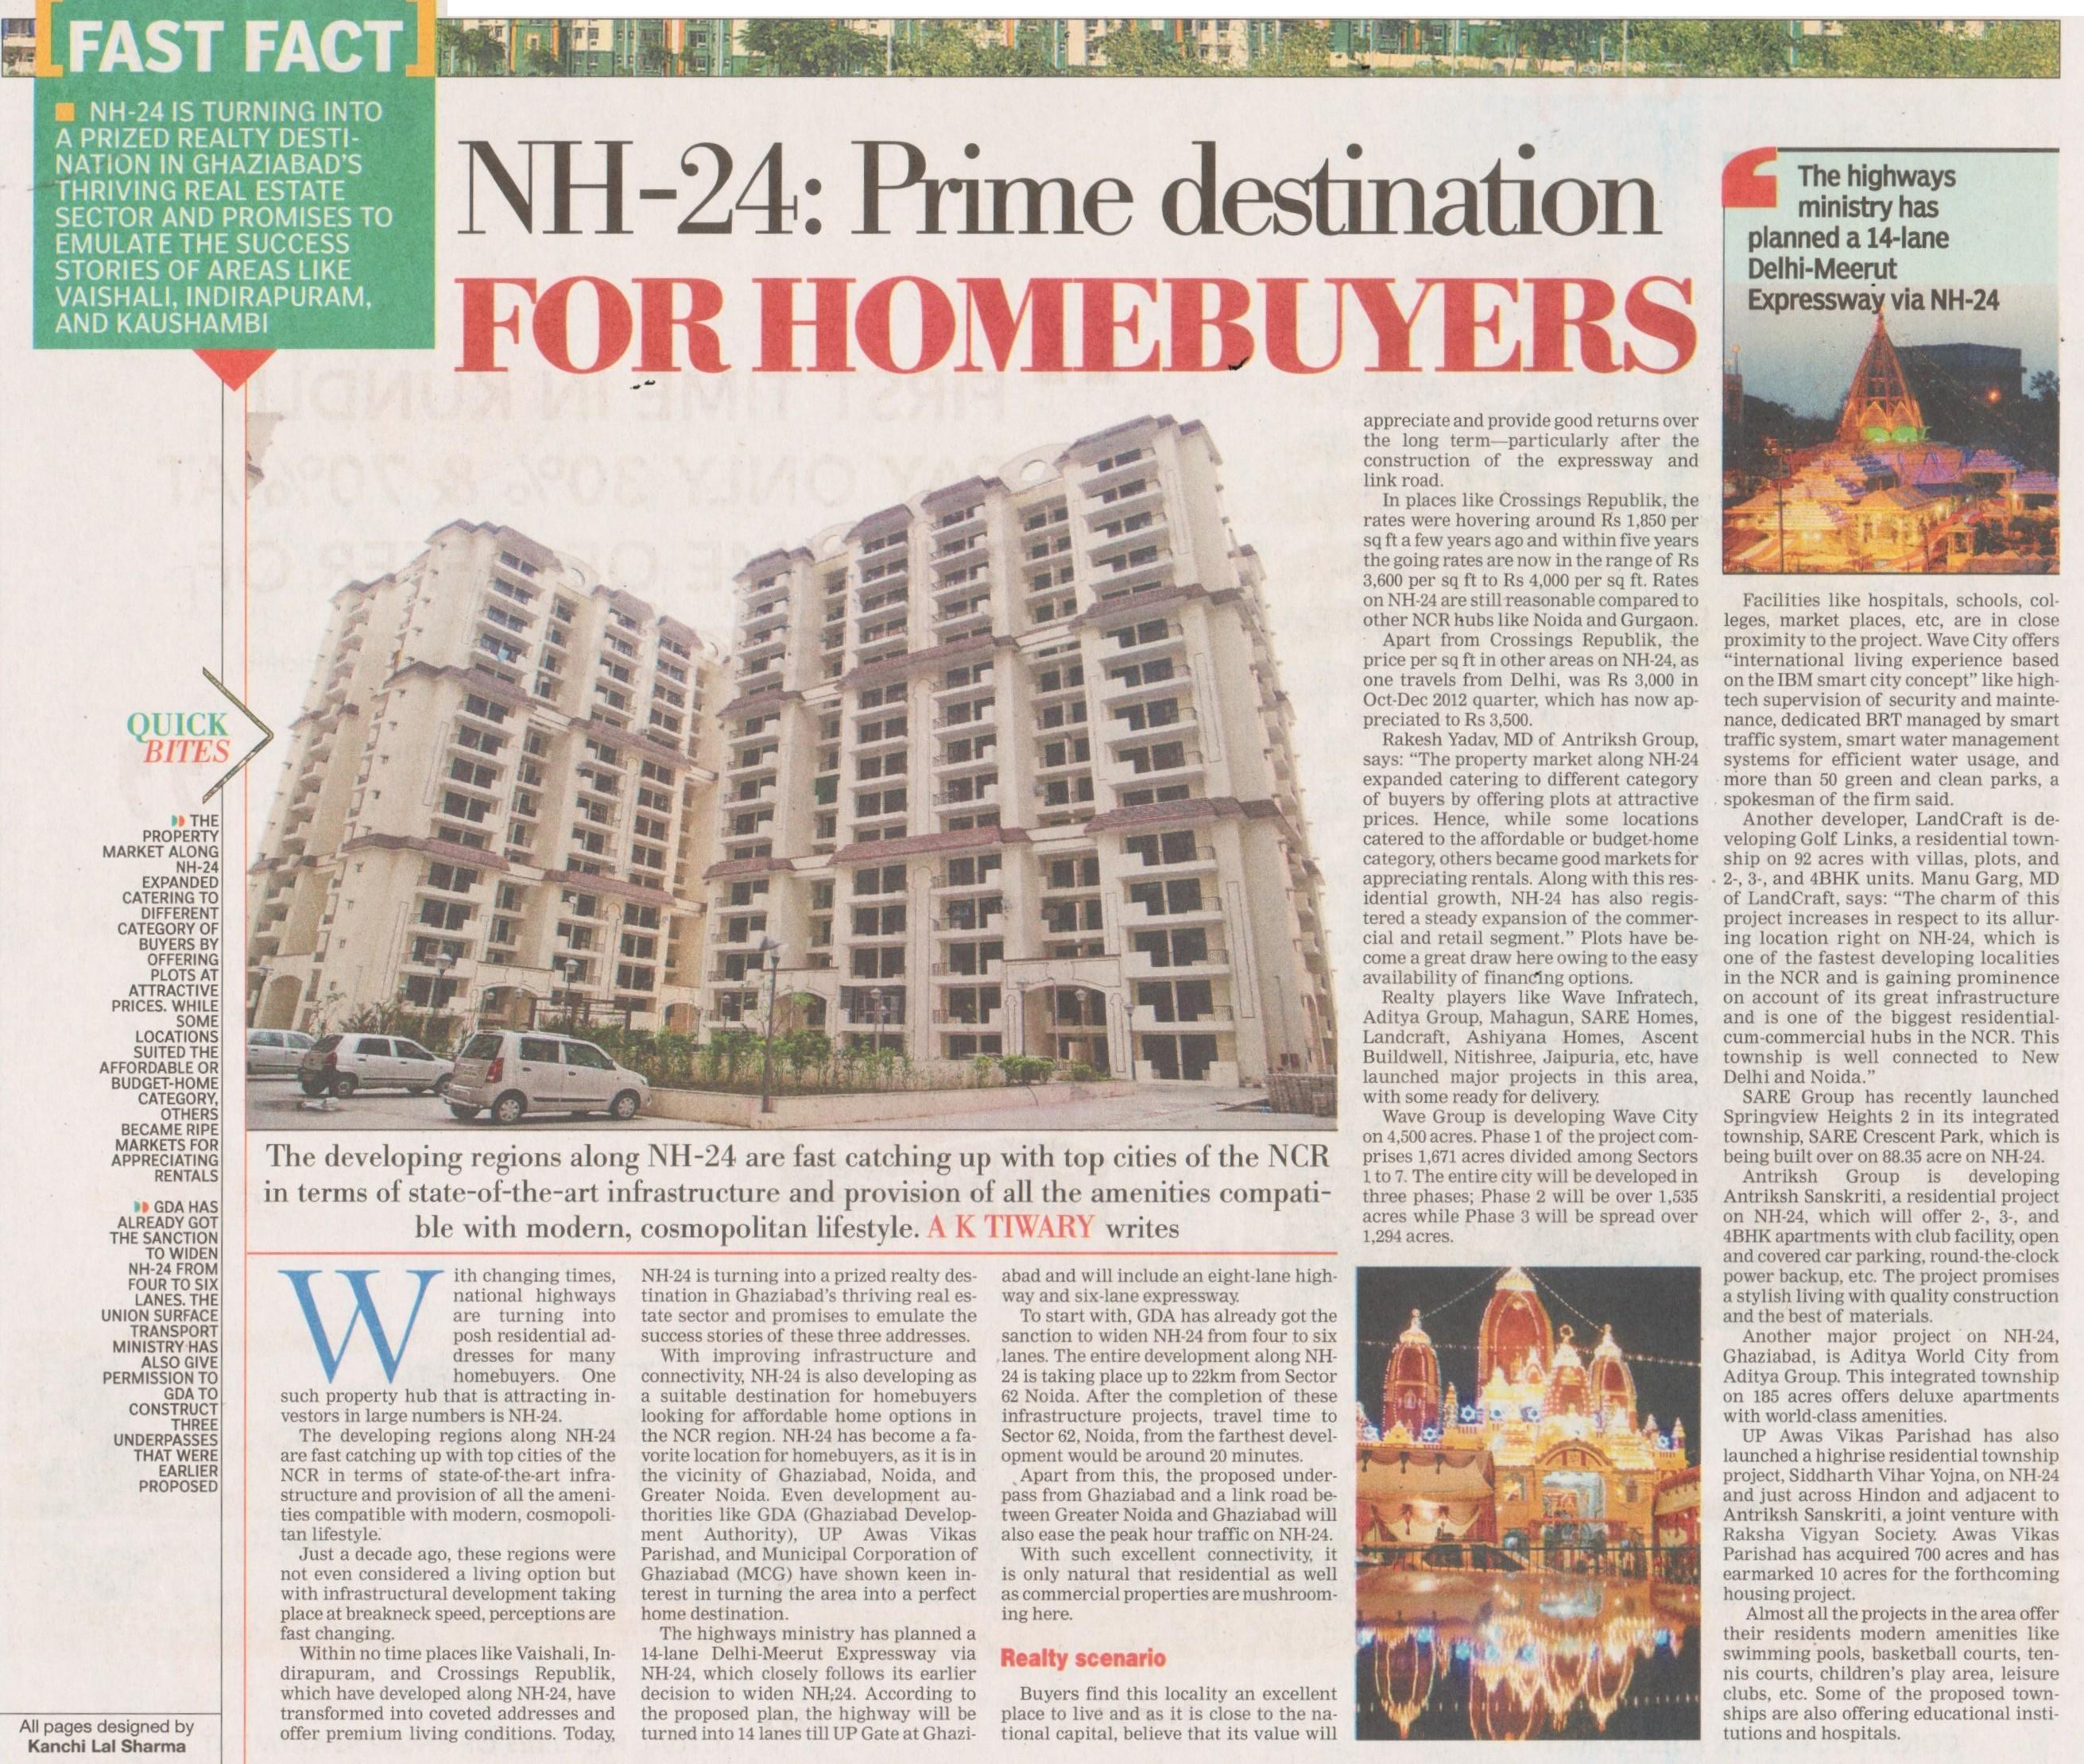 NH-24 prime destination for homebuyers